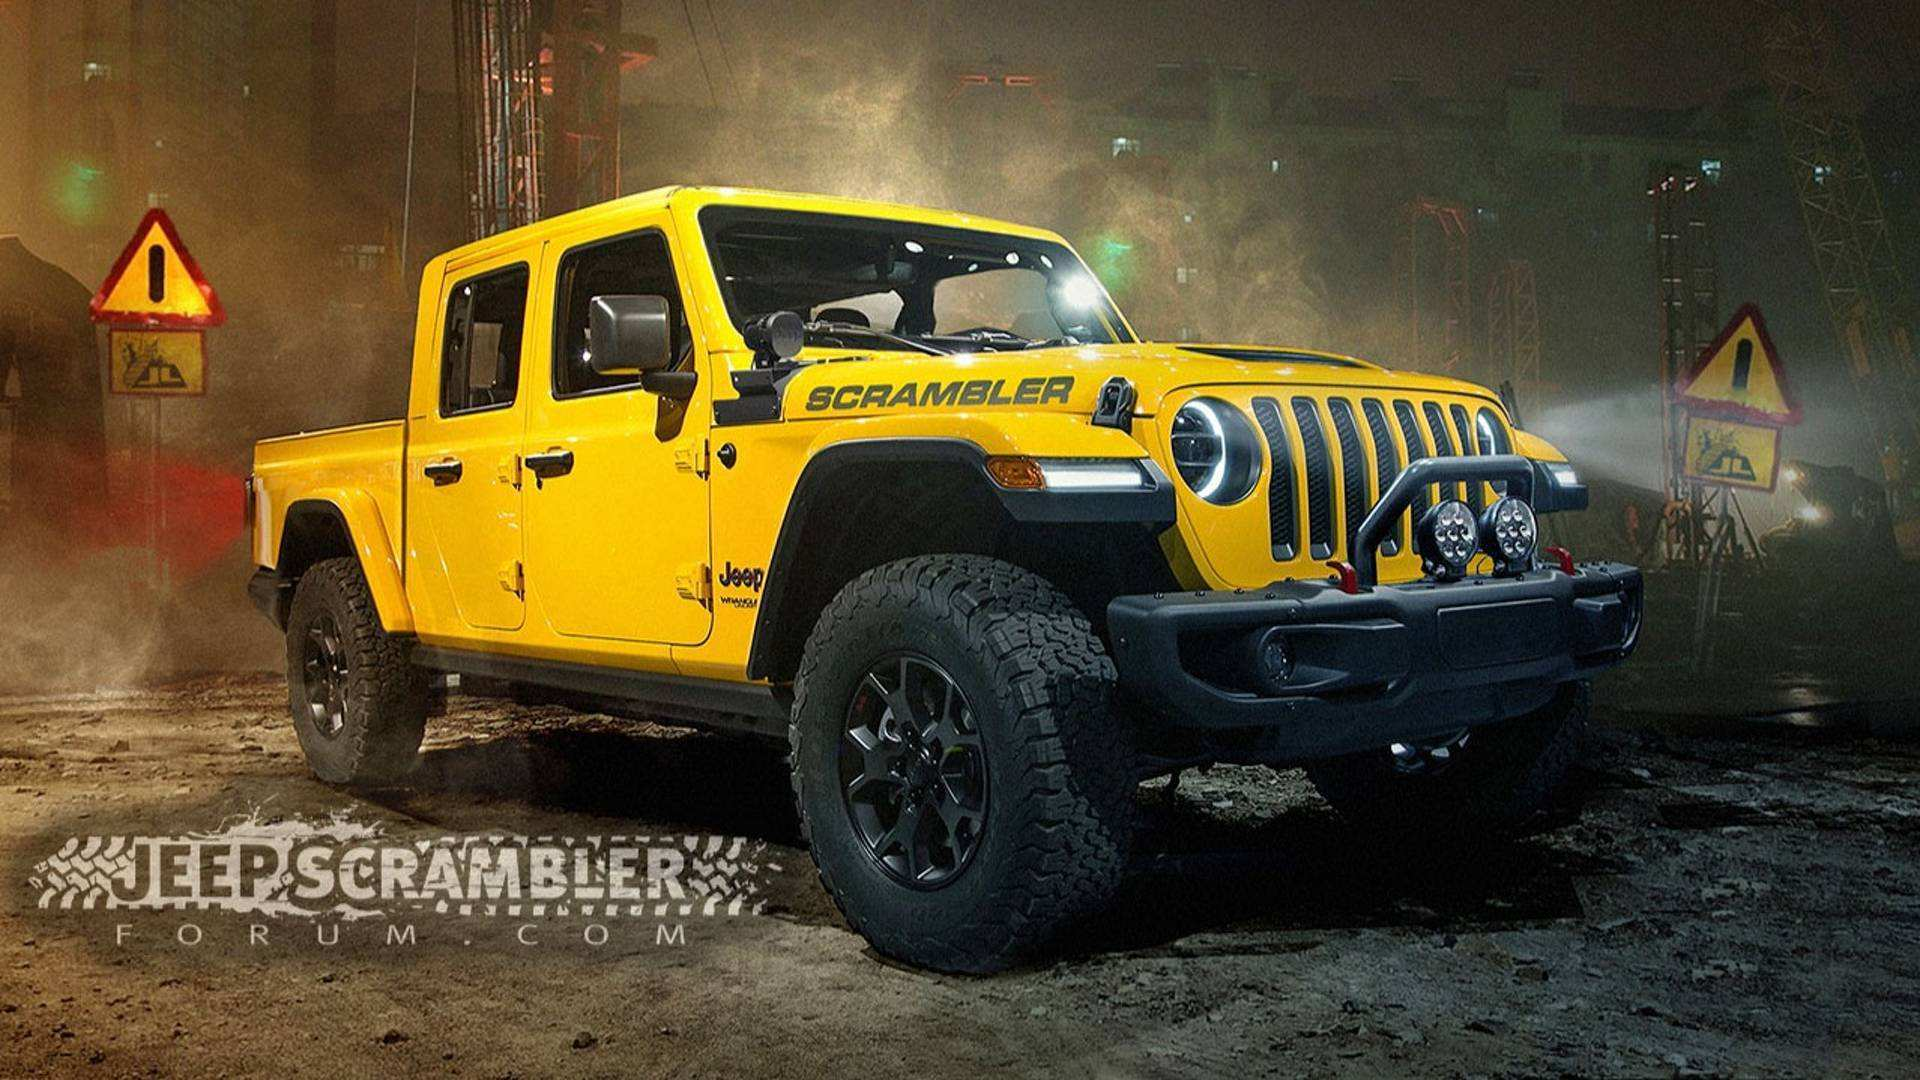 68 Great 2020 The Jeep Wrangler Images for 2020 The Jeep Wrangler